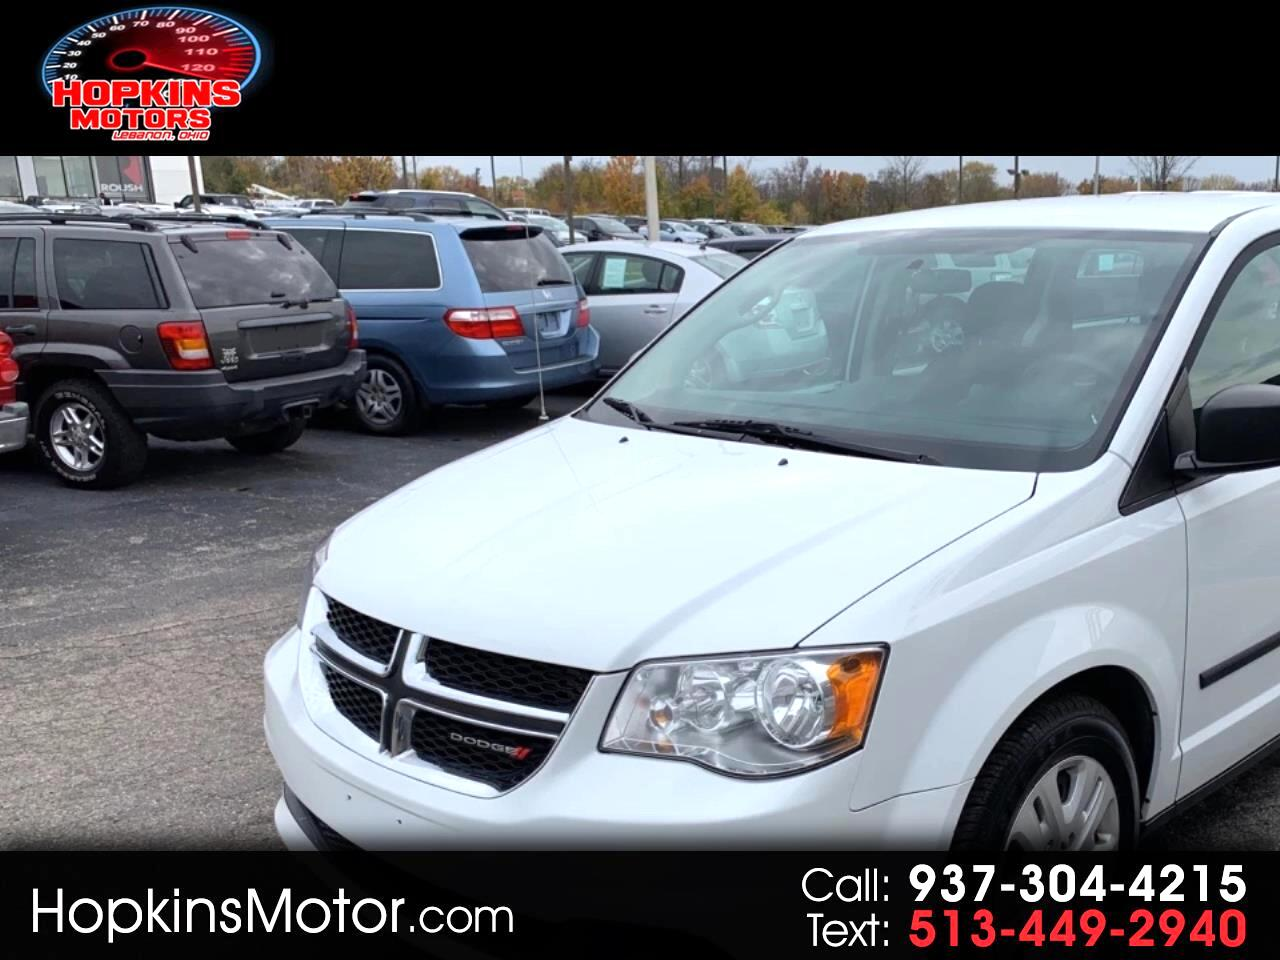 2015 Dodge Grand Caravan 4dr Wgn American Value Pkg